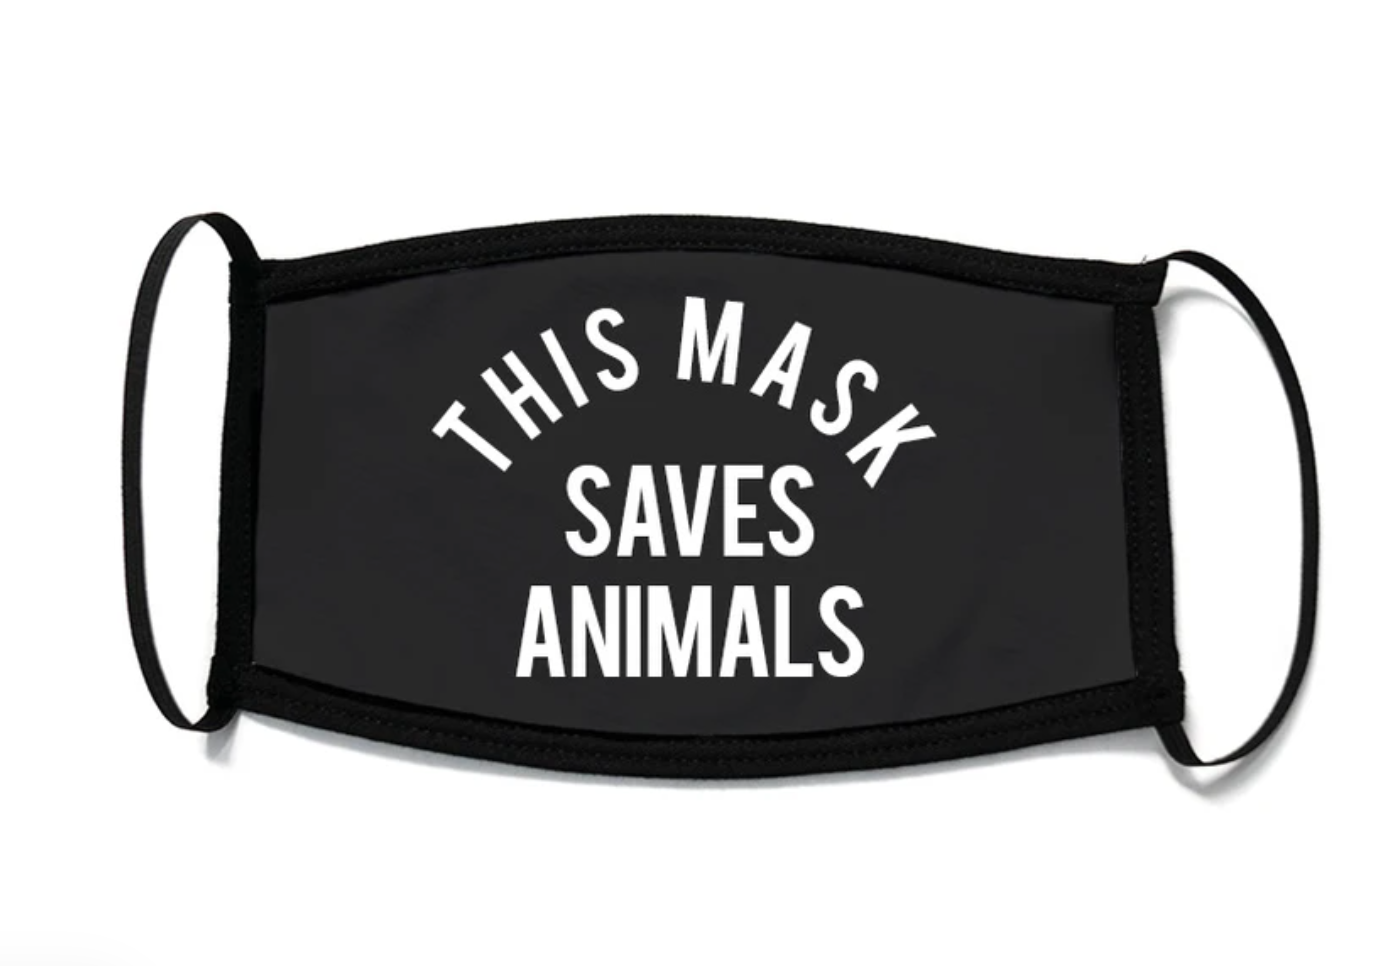 Arm the Animals, $18.99